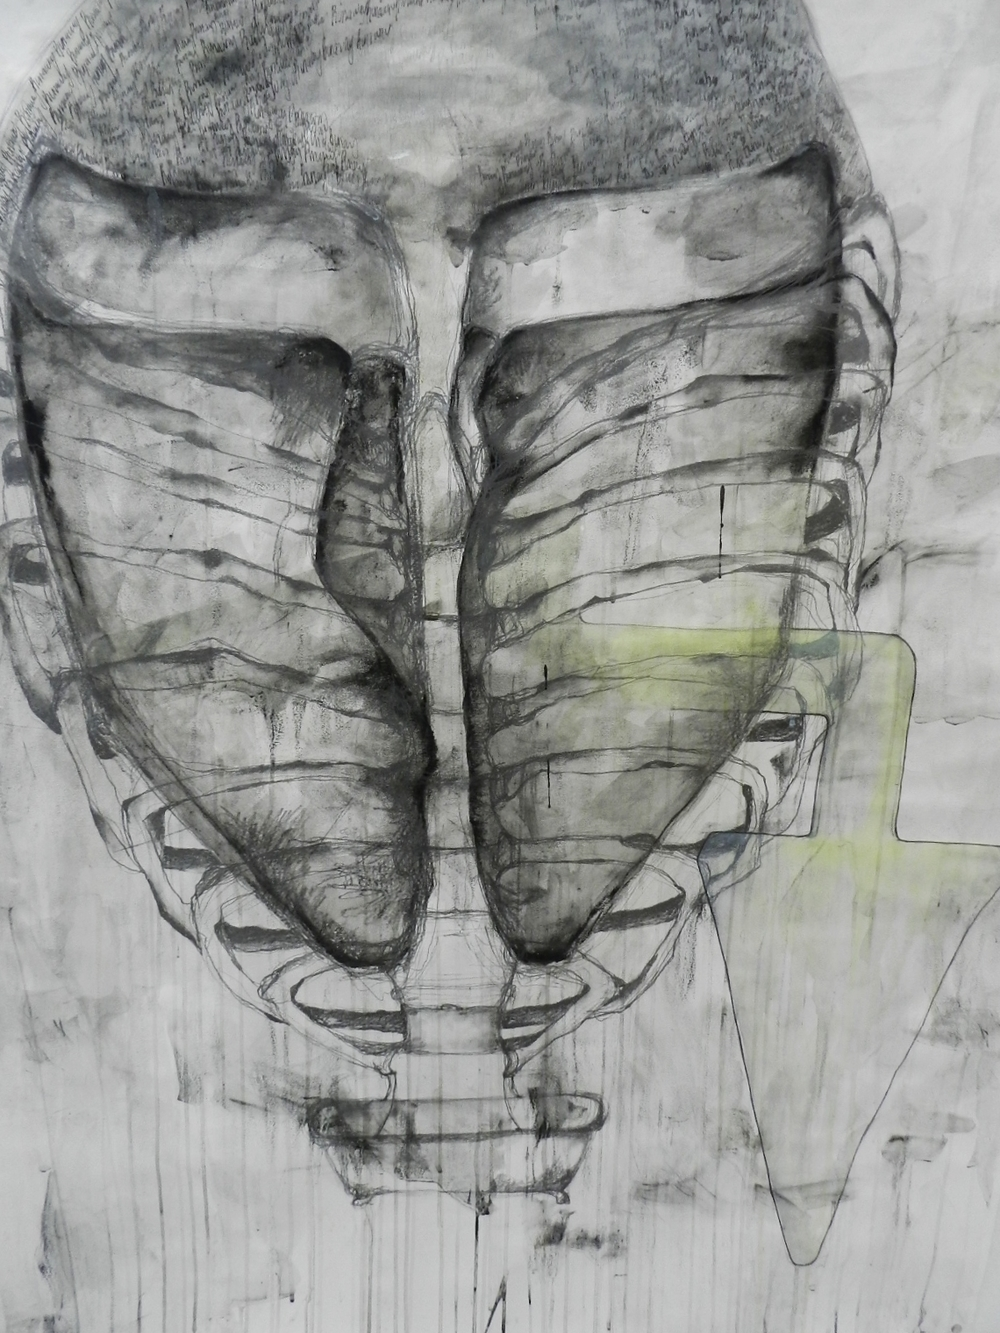 Charcoal, pen and ink and acrylic washes on paper. 2012